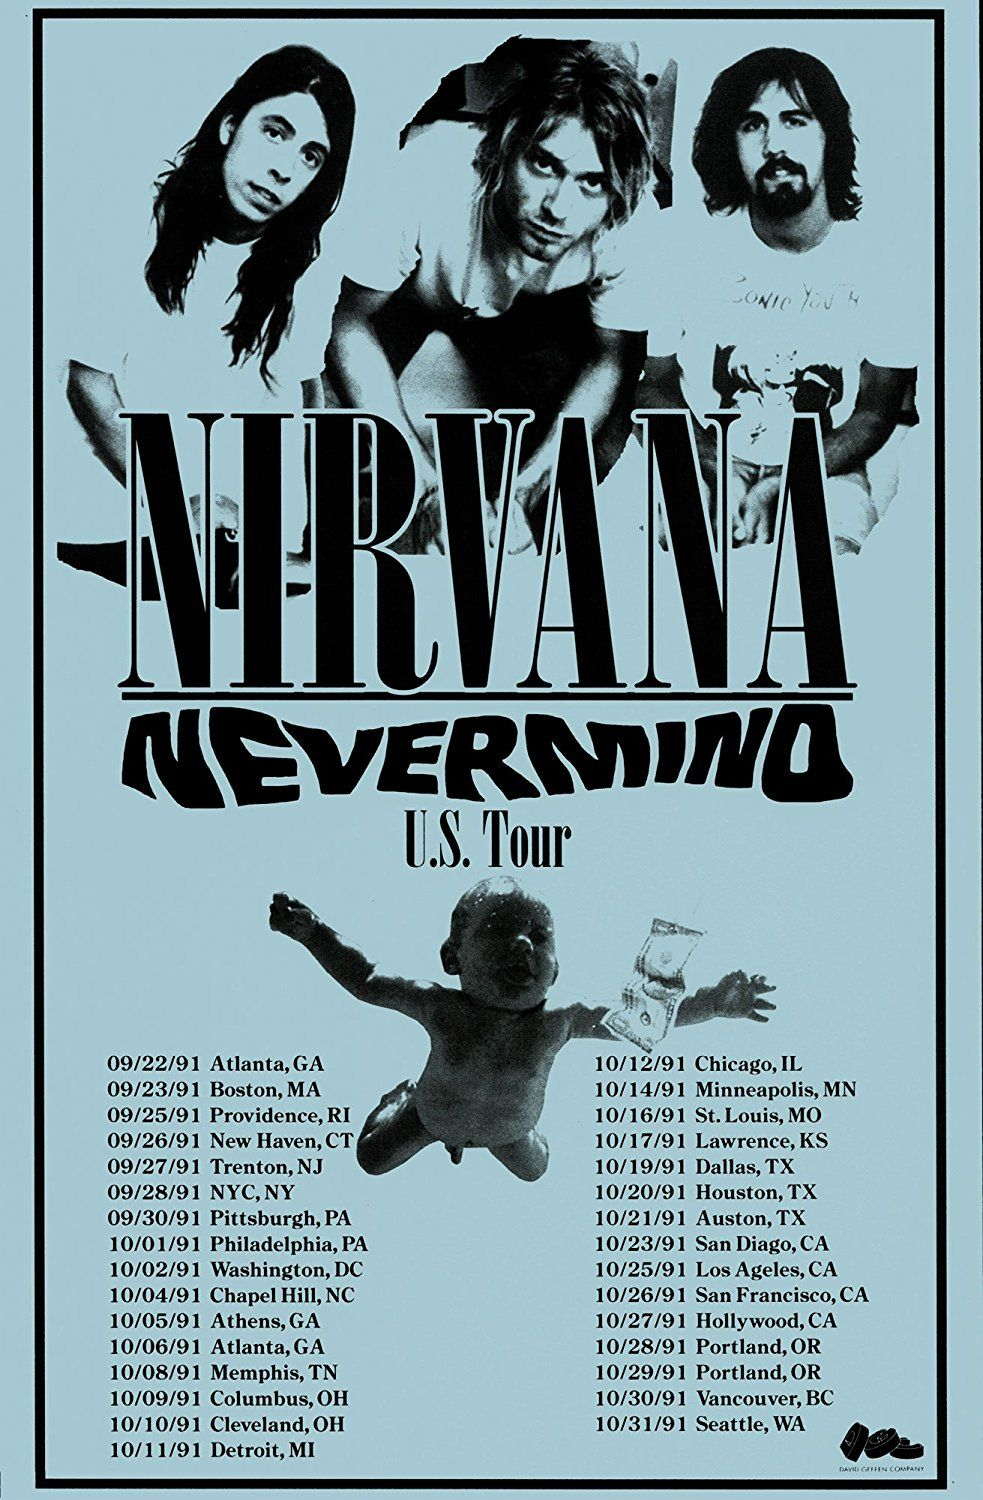 Nirvana Nevermind Tour 1991 Retro Art Print — Poster  37234af82